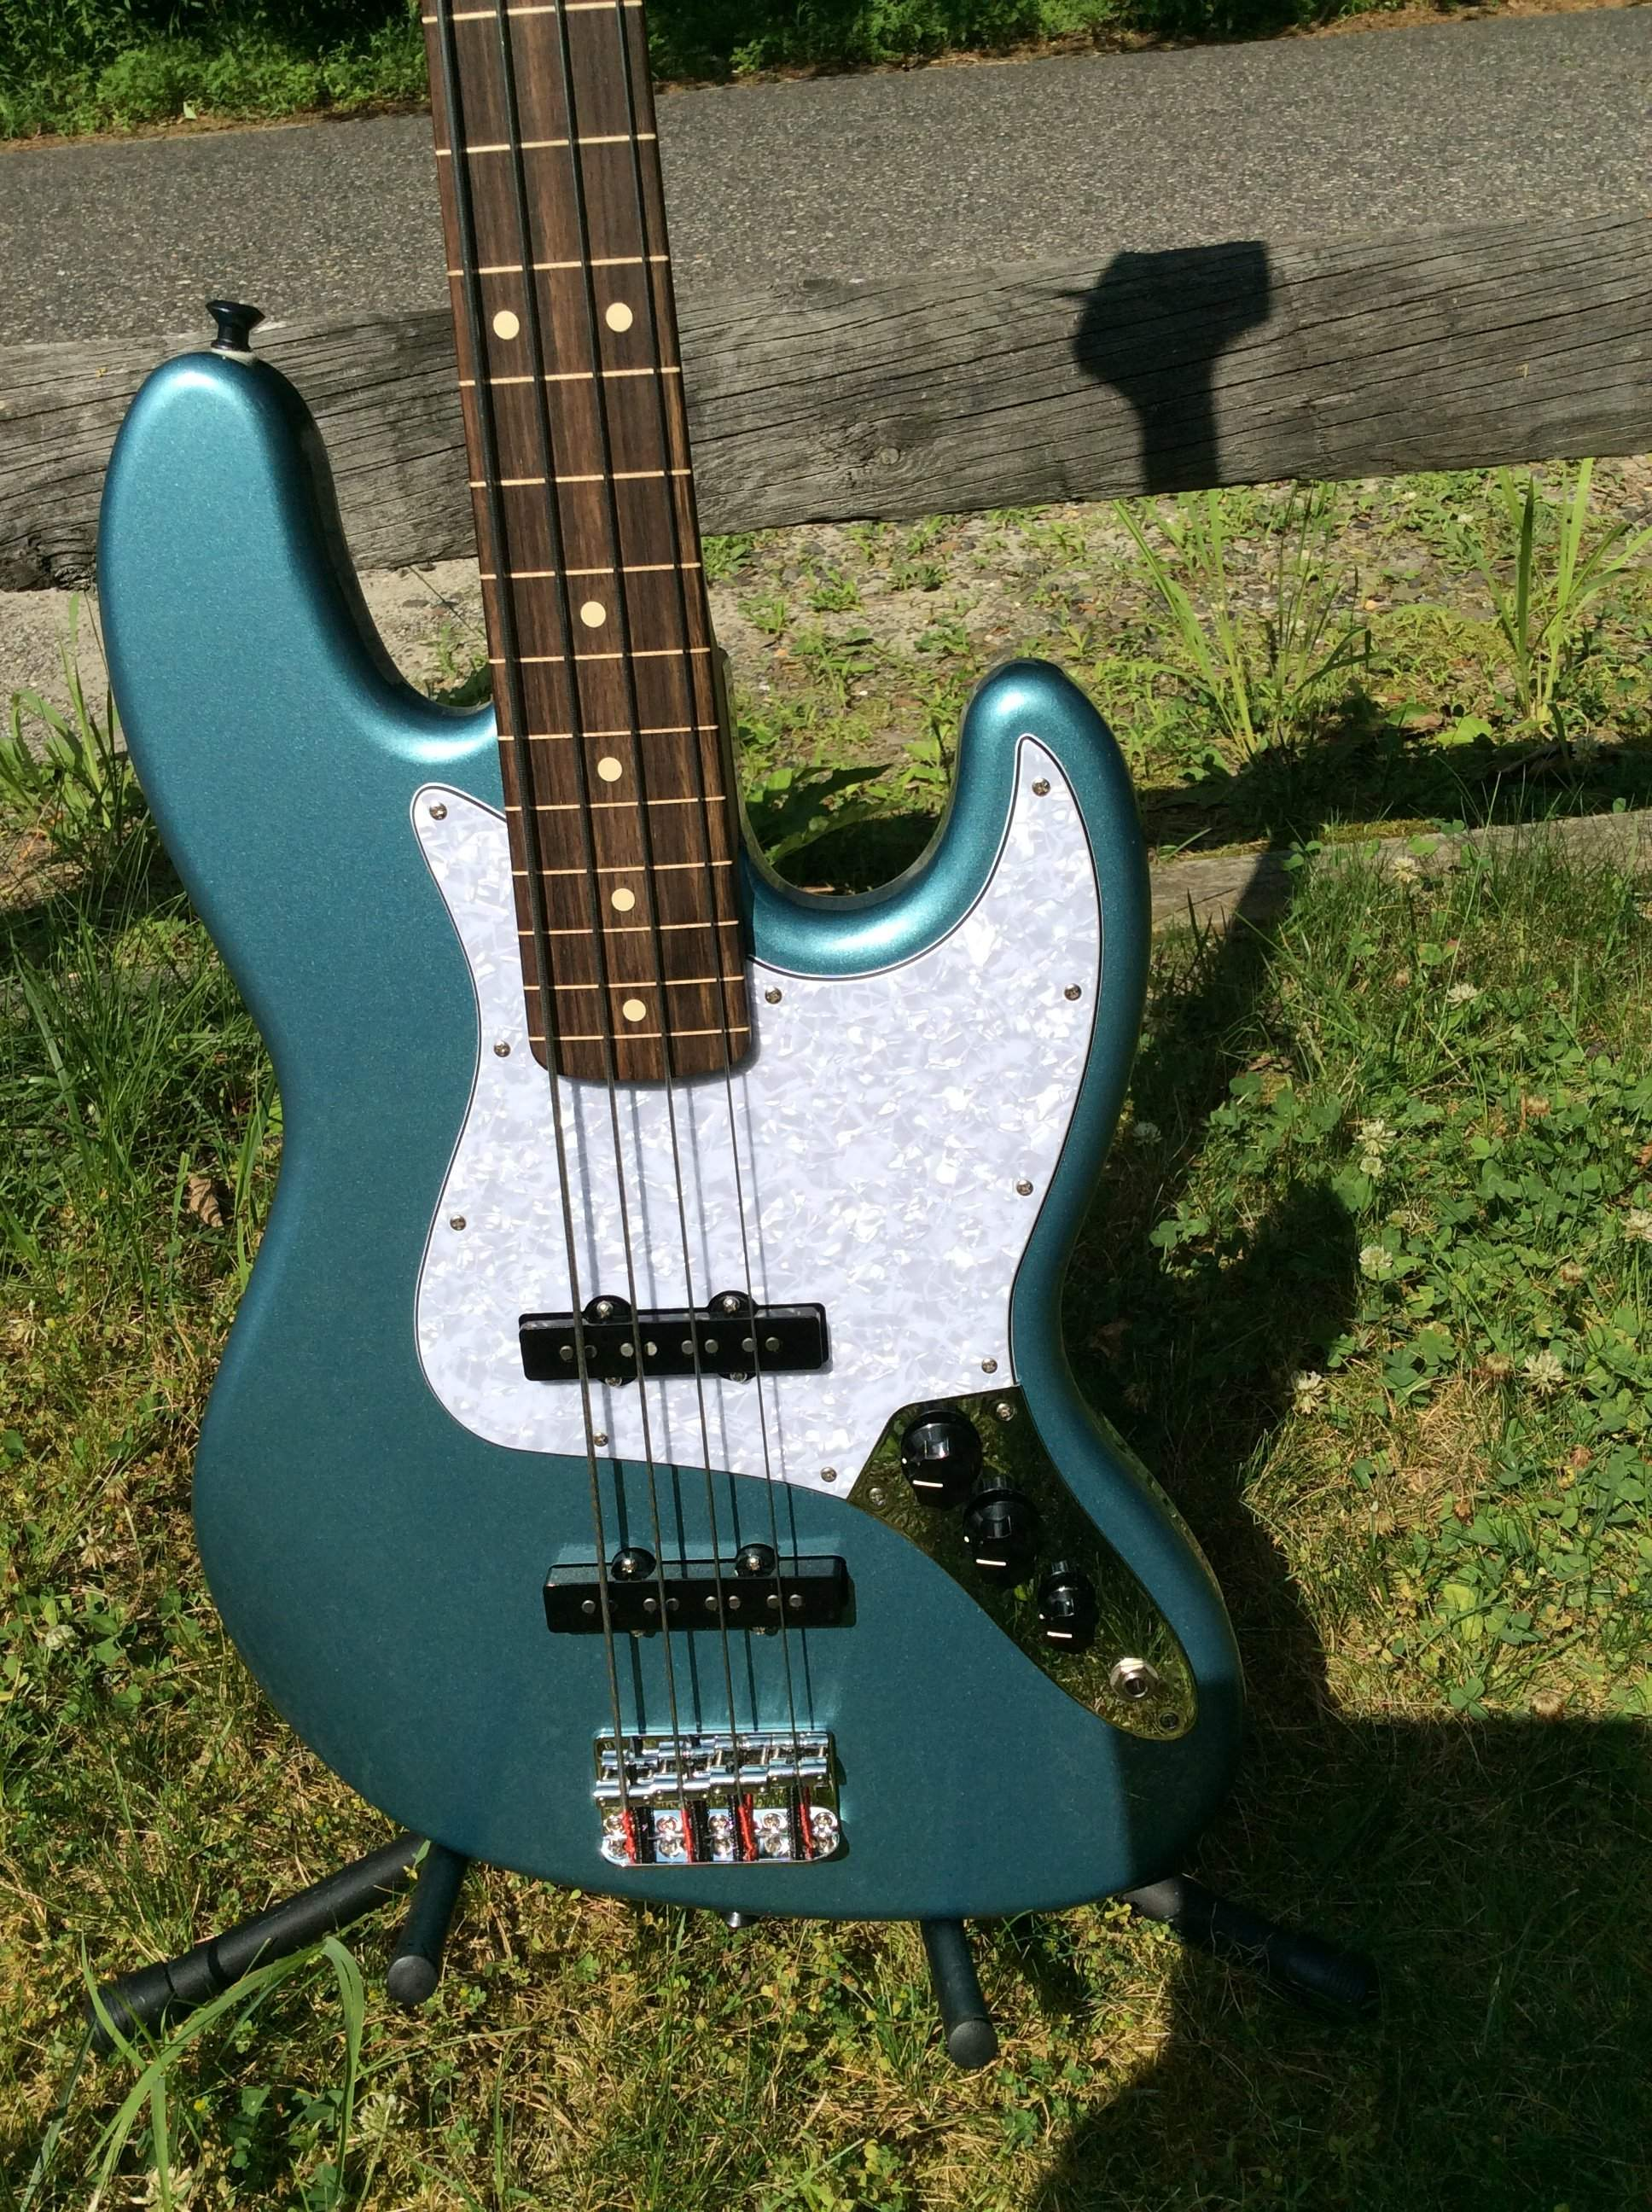 SOLD - Price dropped again! BRAND NEW Lined Fretless Fender